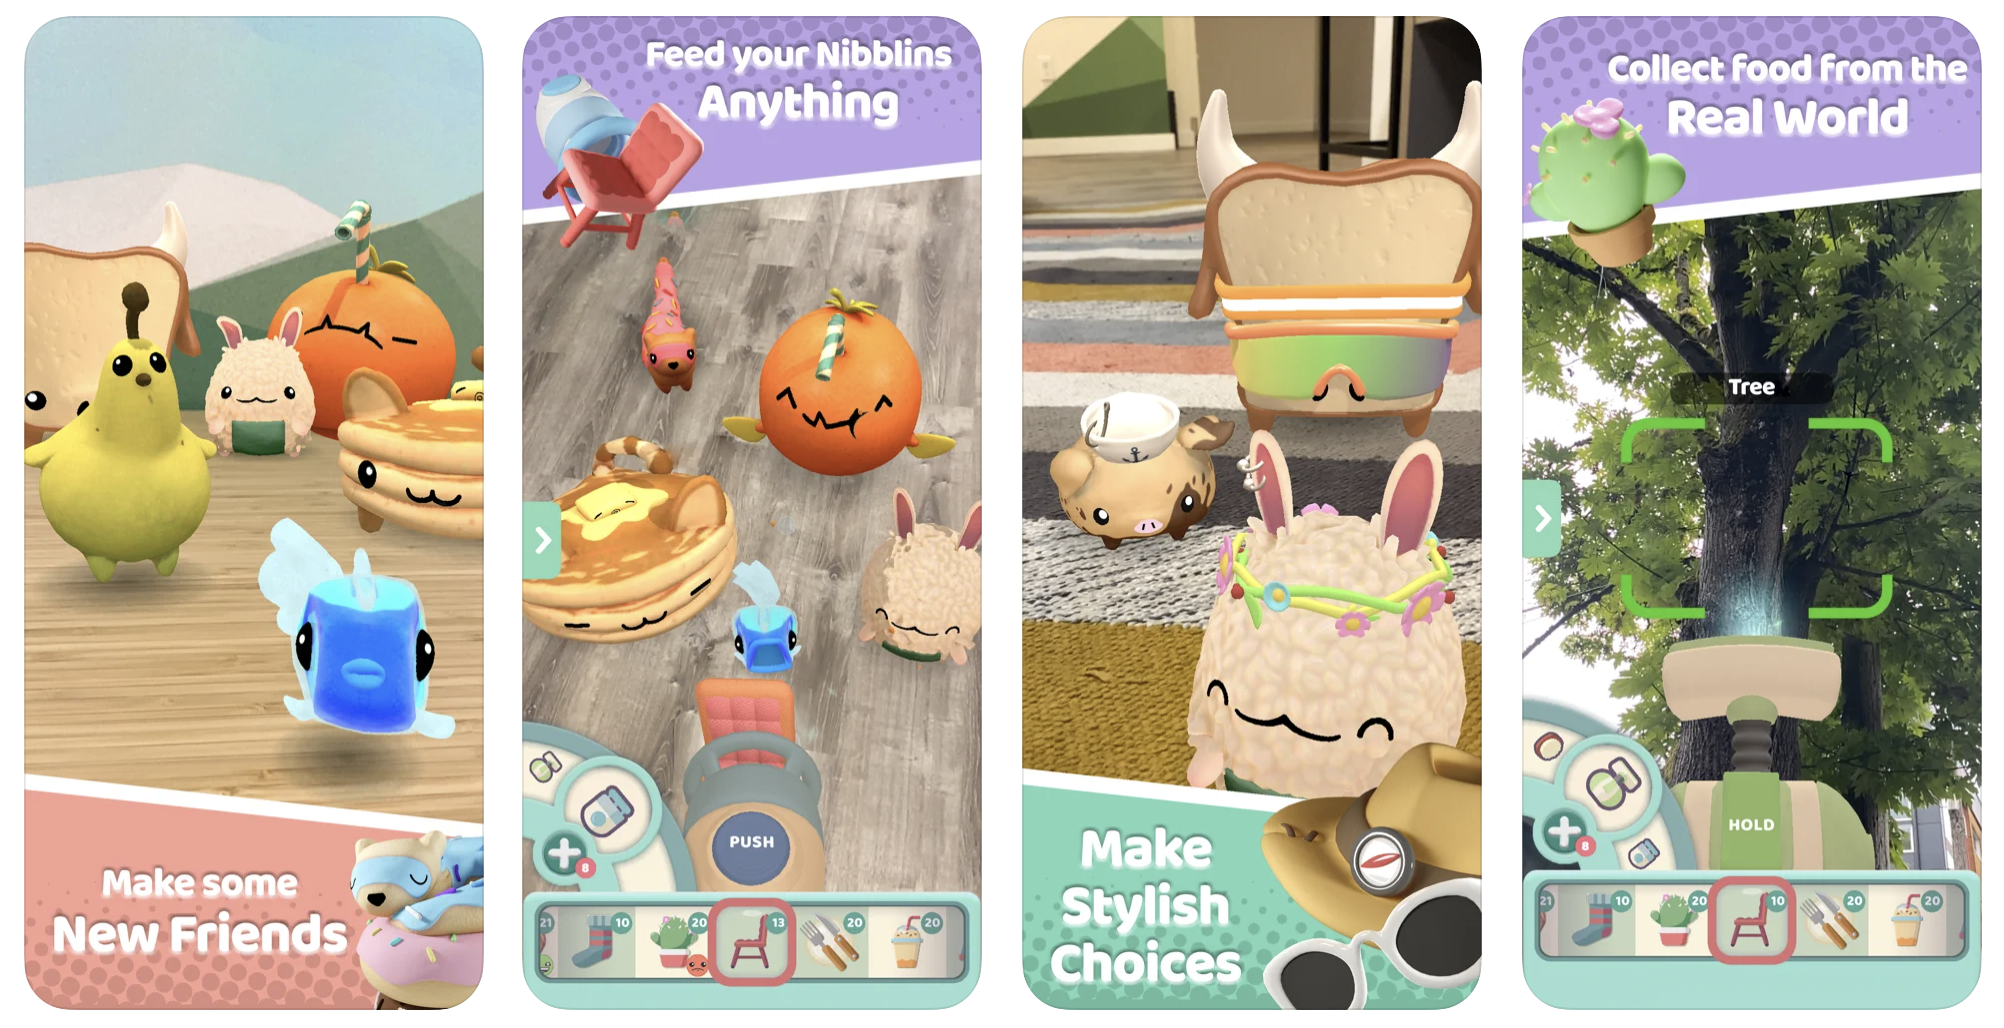 nibblity app store images